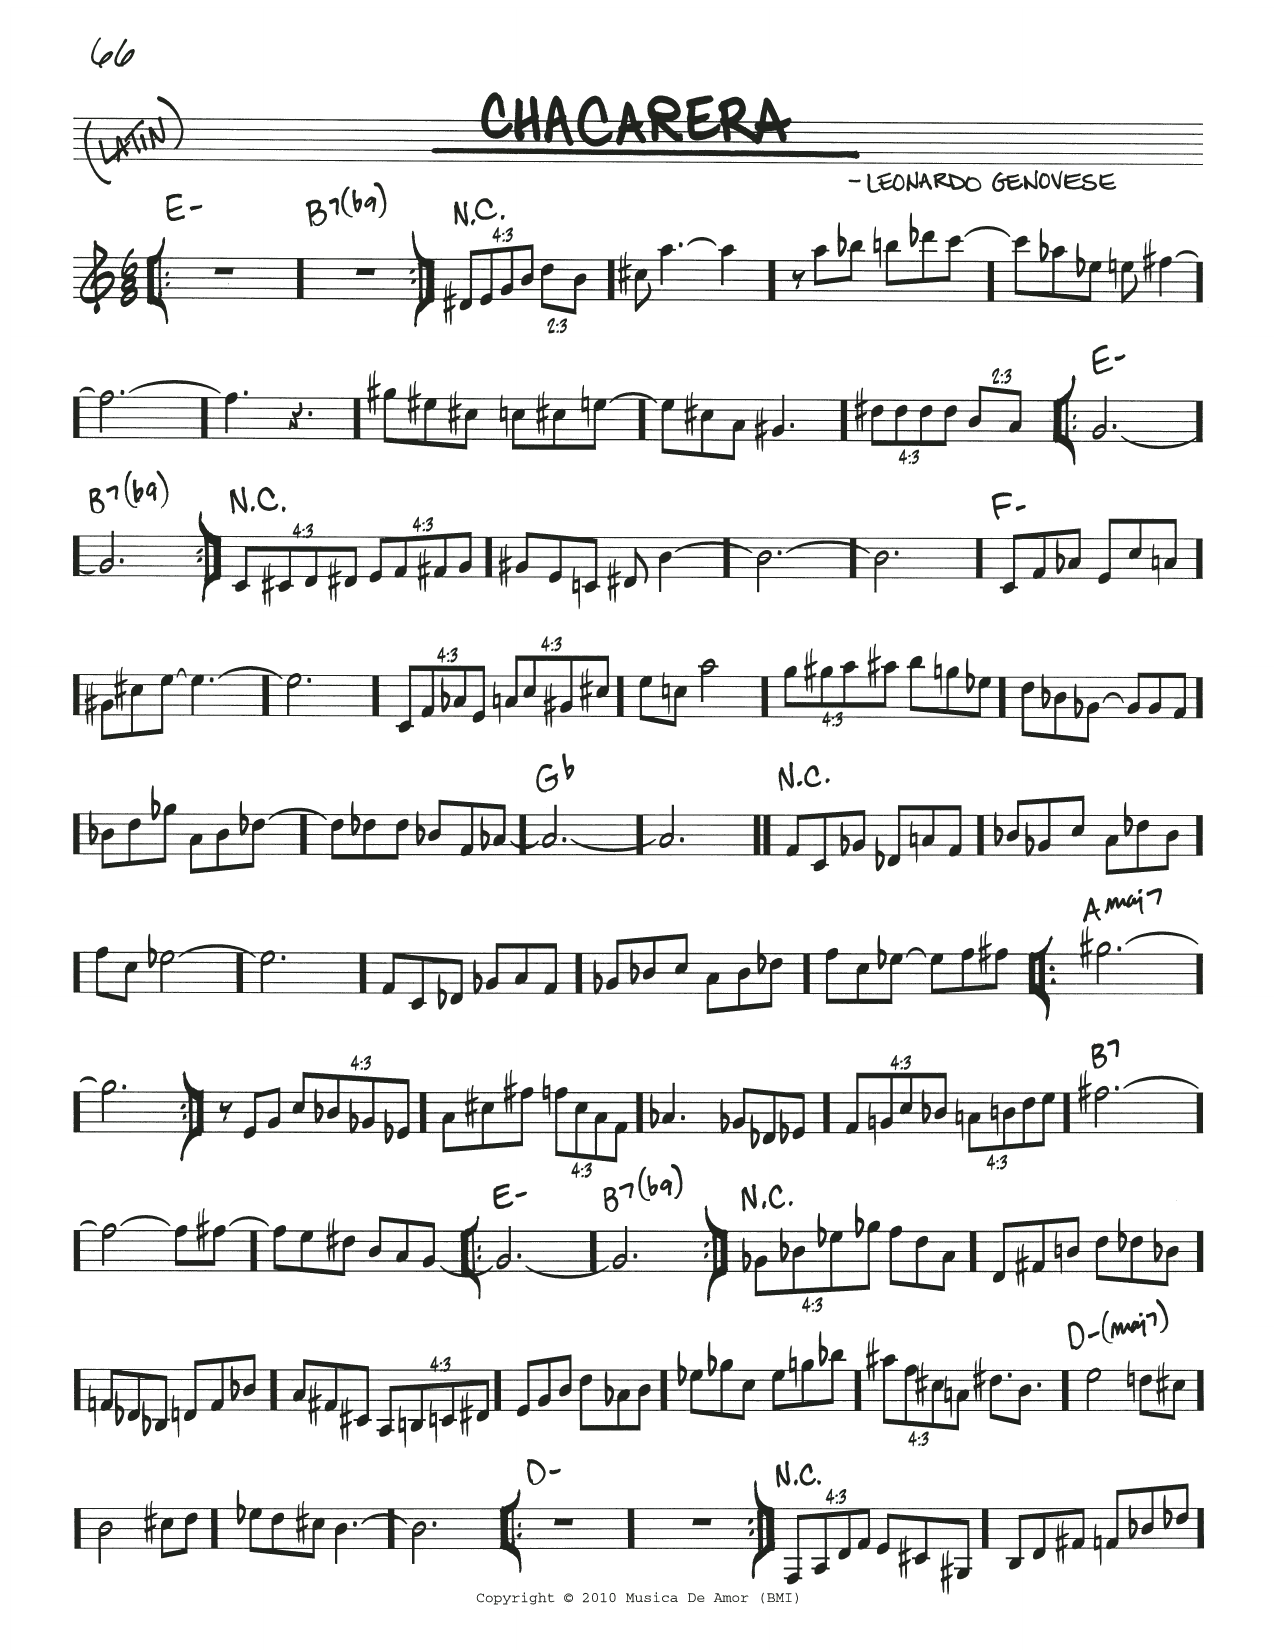 Esperanza Spalding Chacarera sheet music notes and chords